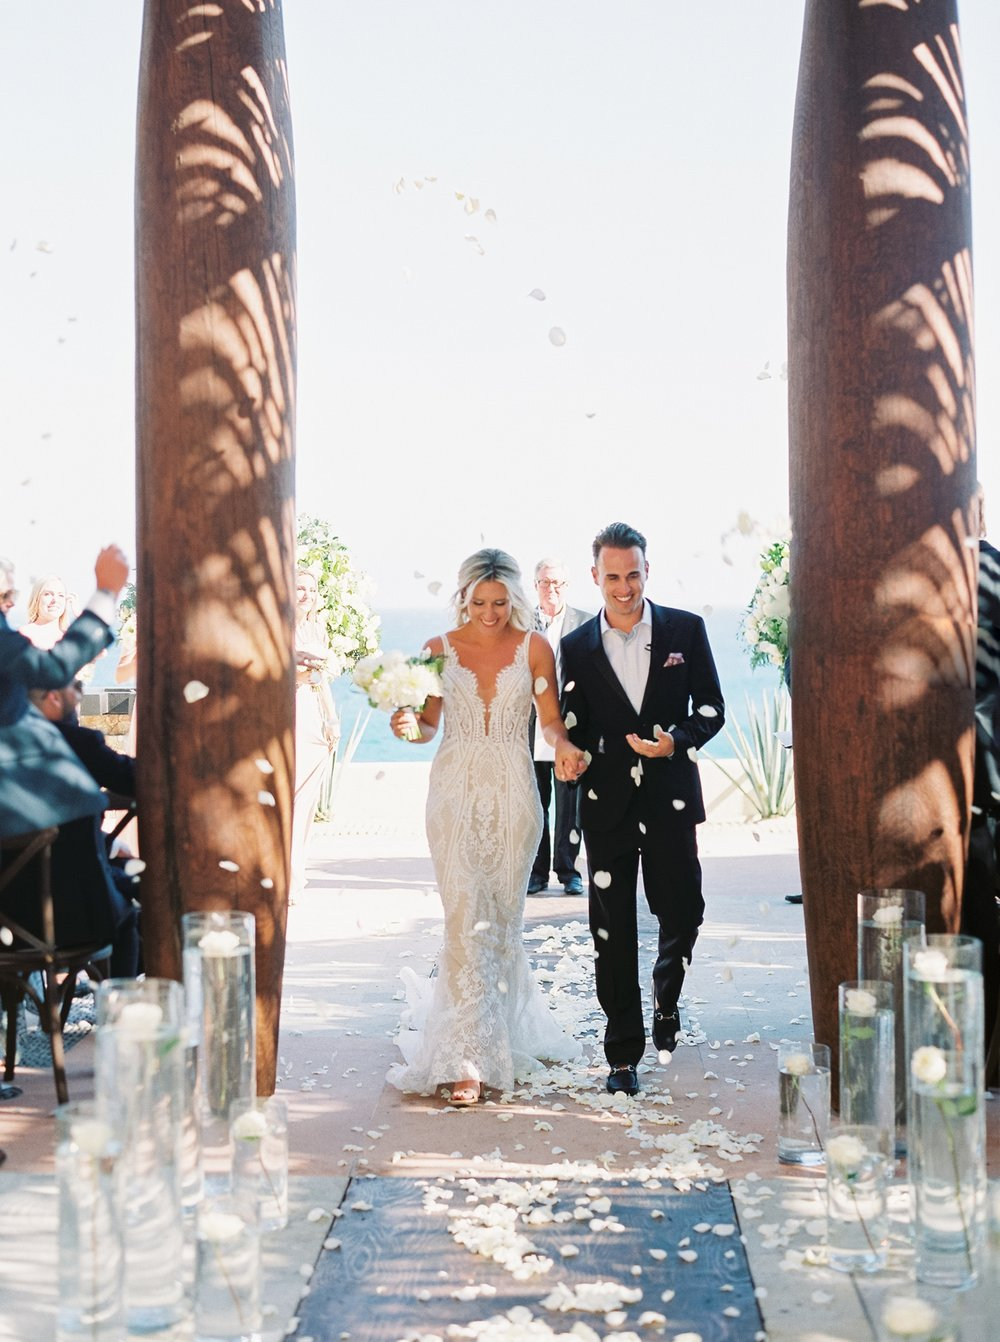 Destination Wedding Photographer Becca Lea